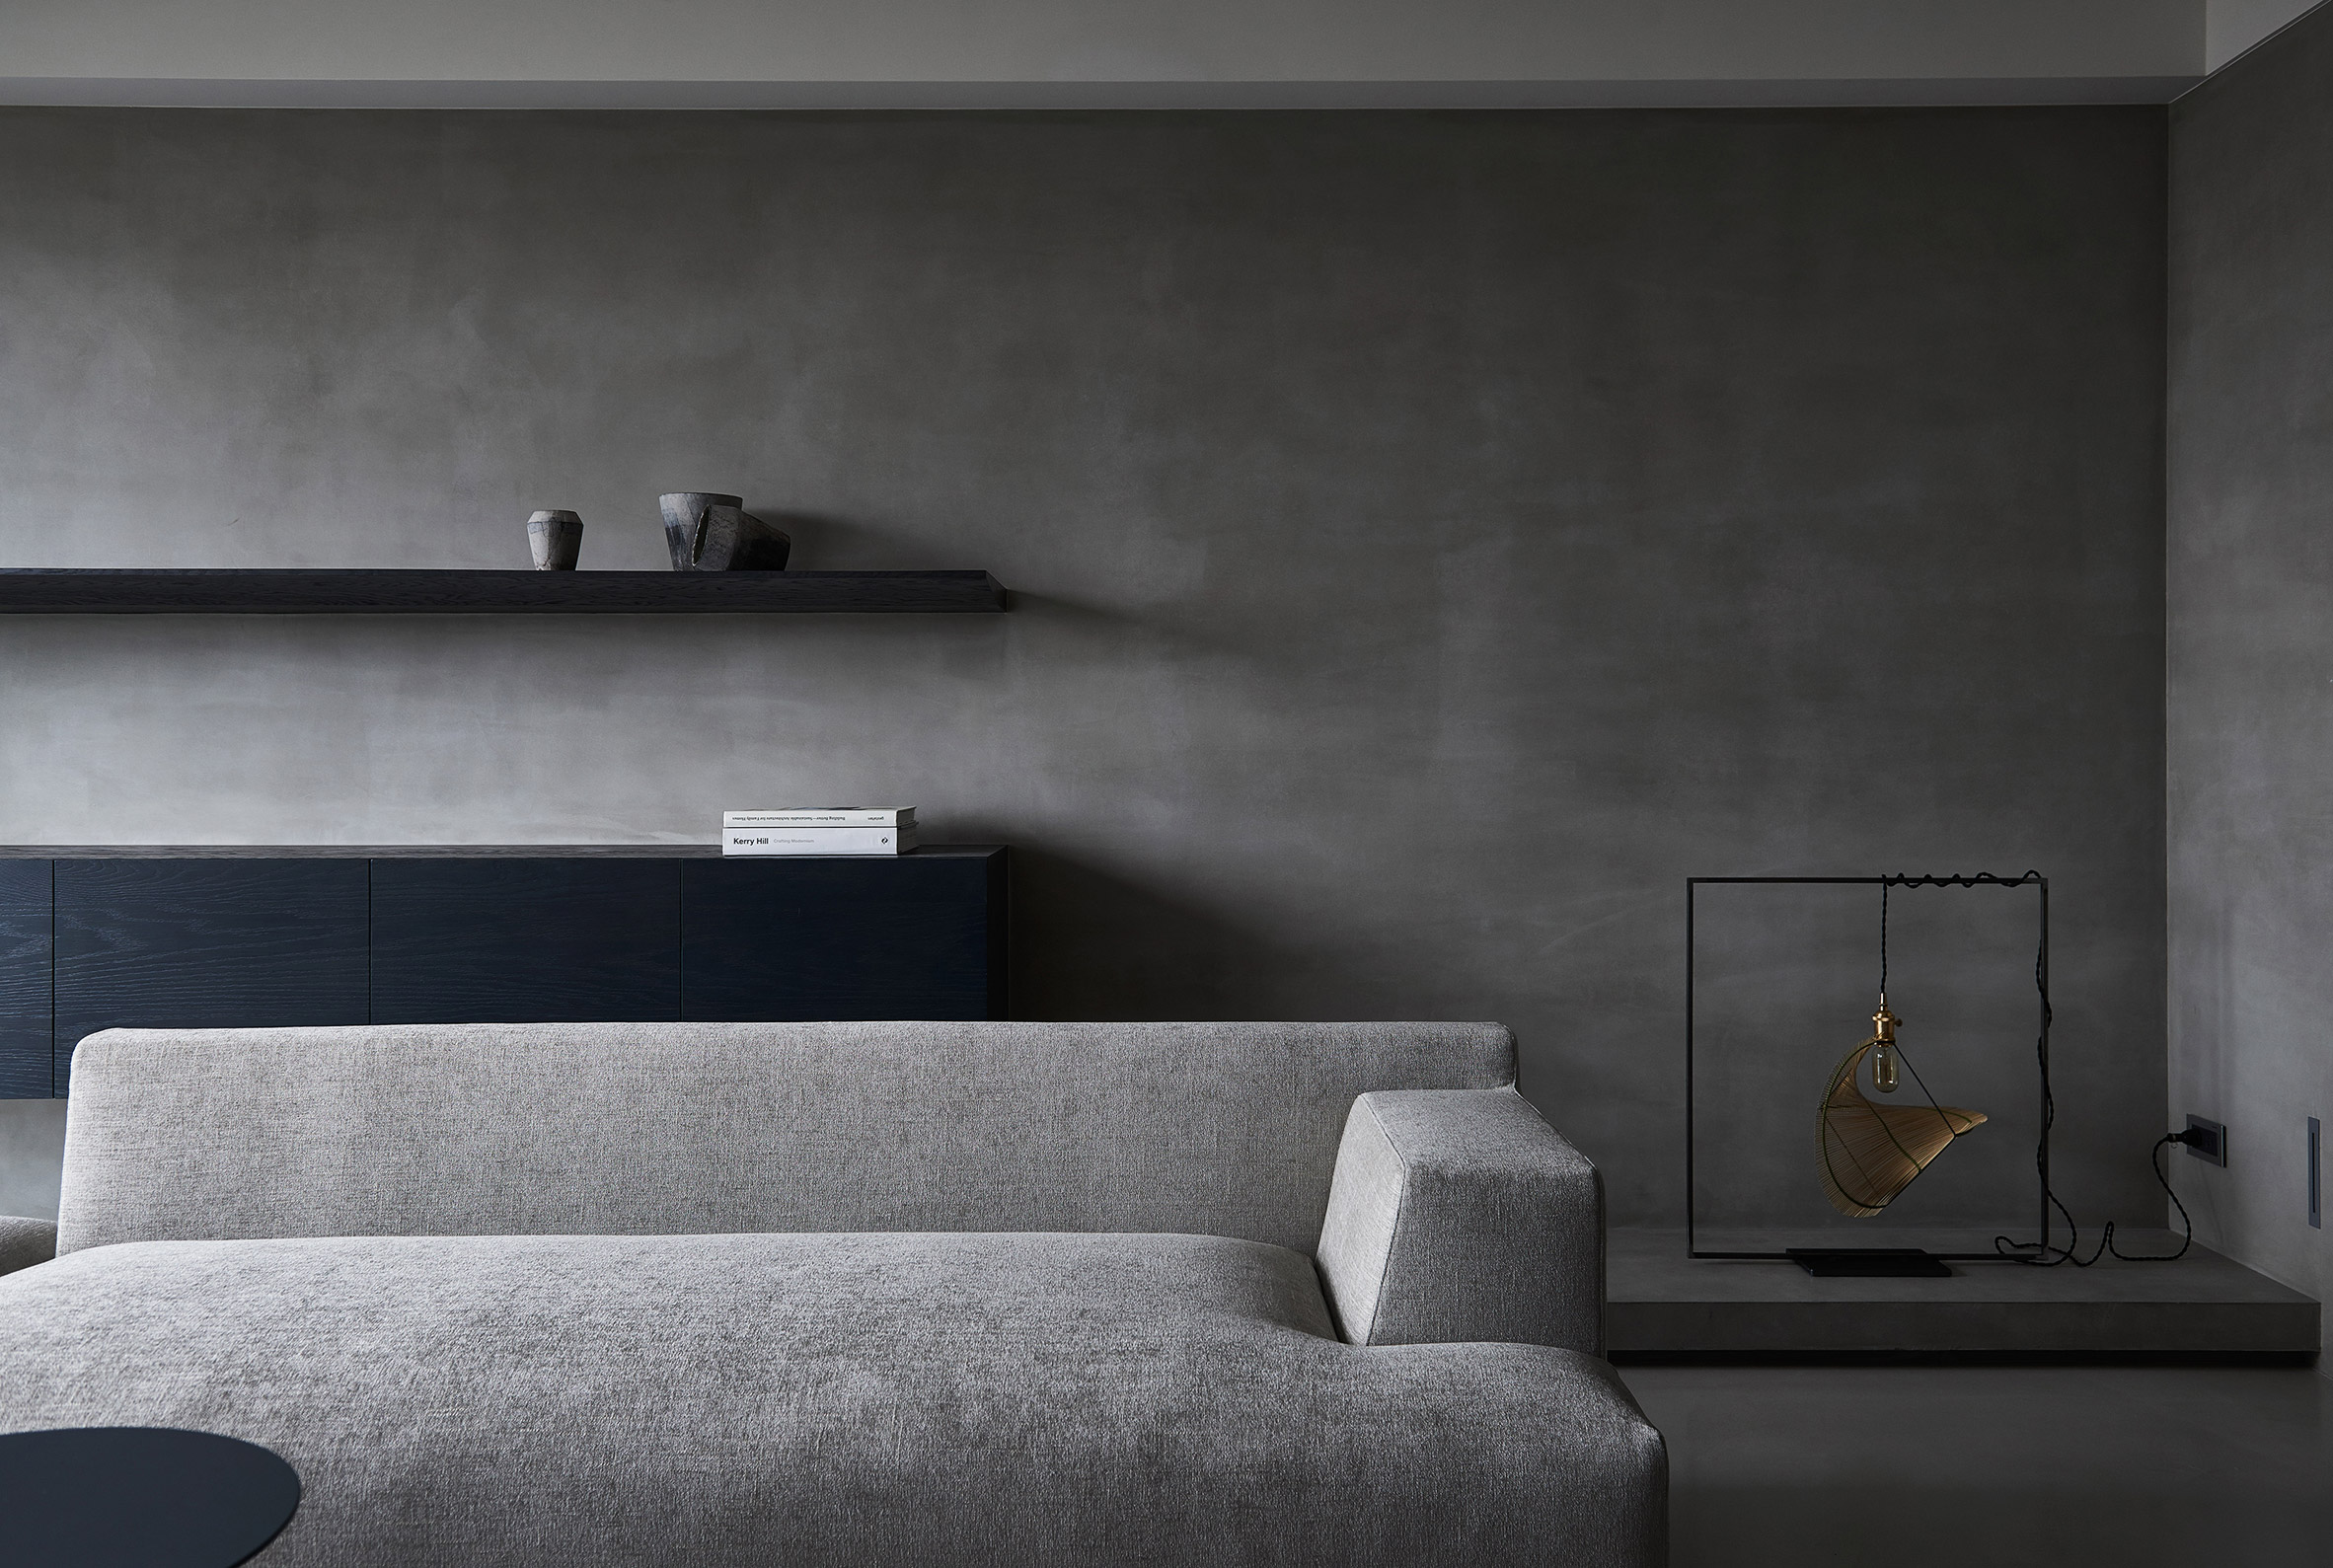 Shades of grey decorate sombre luxury apartment in Taiwan